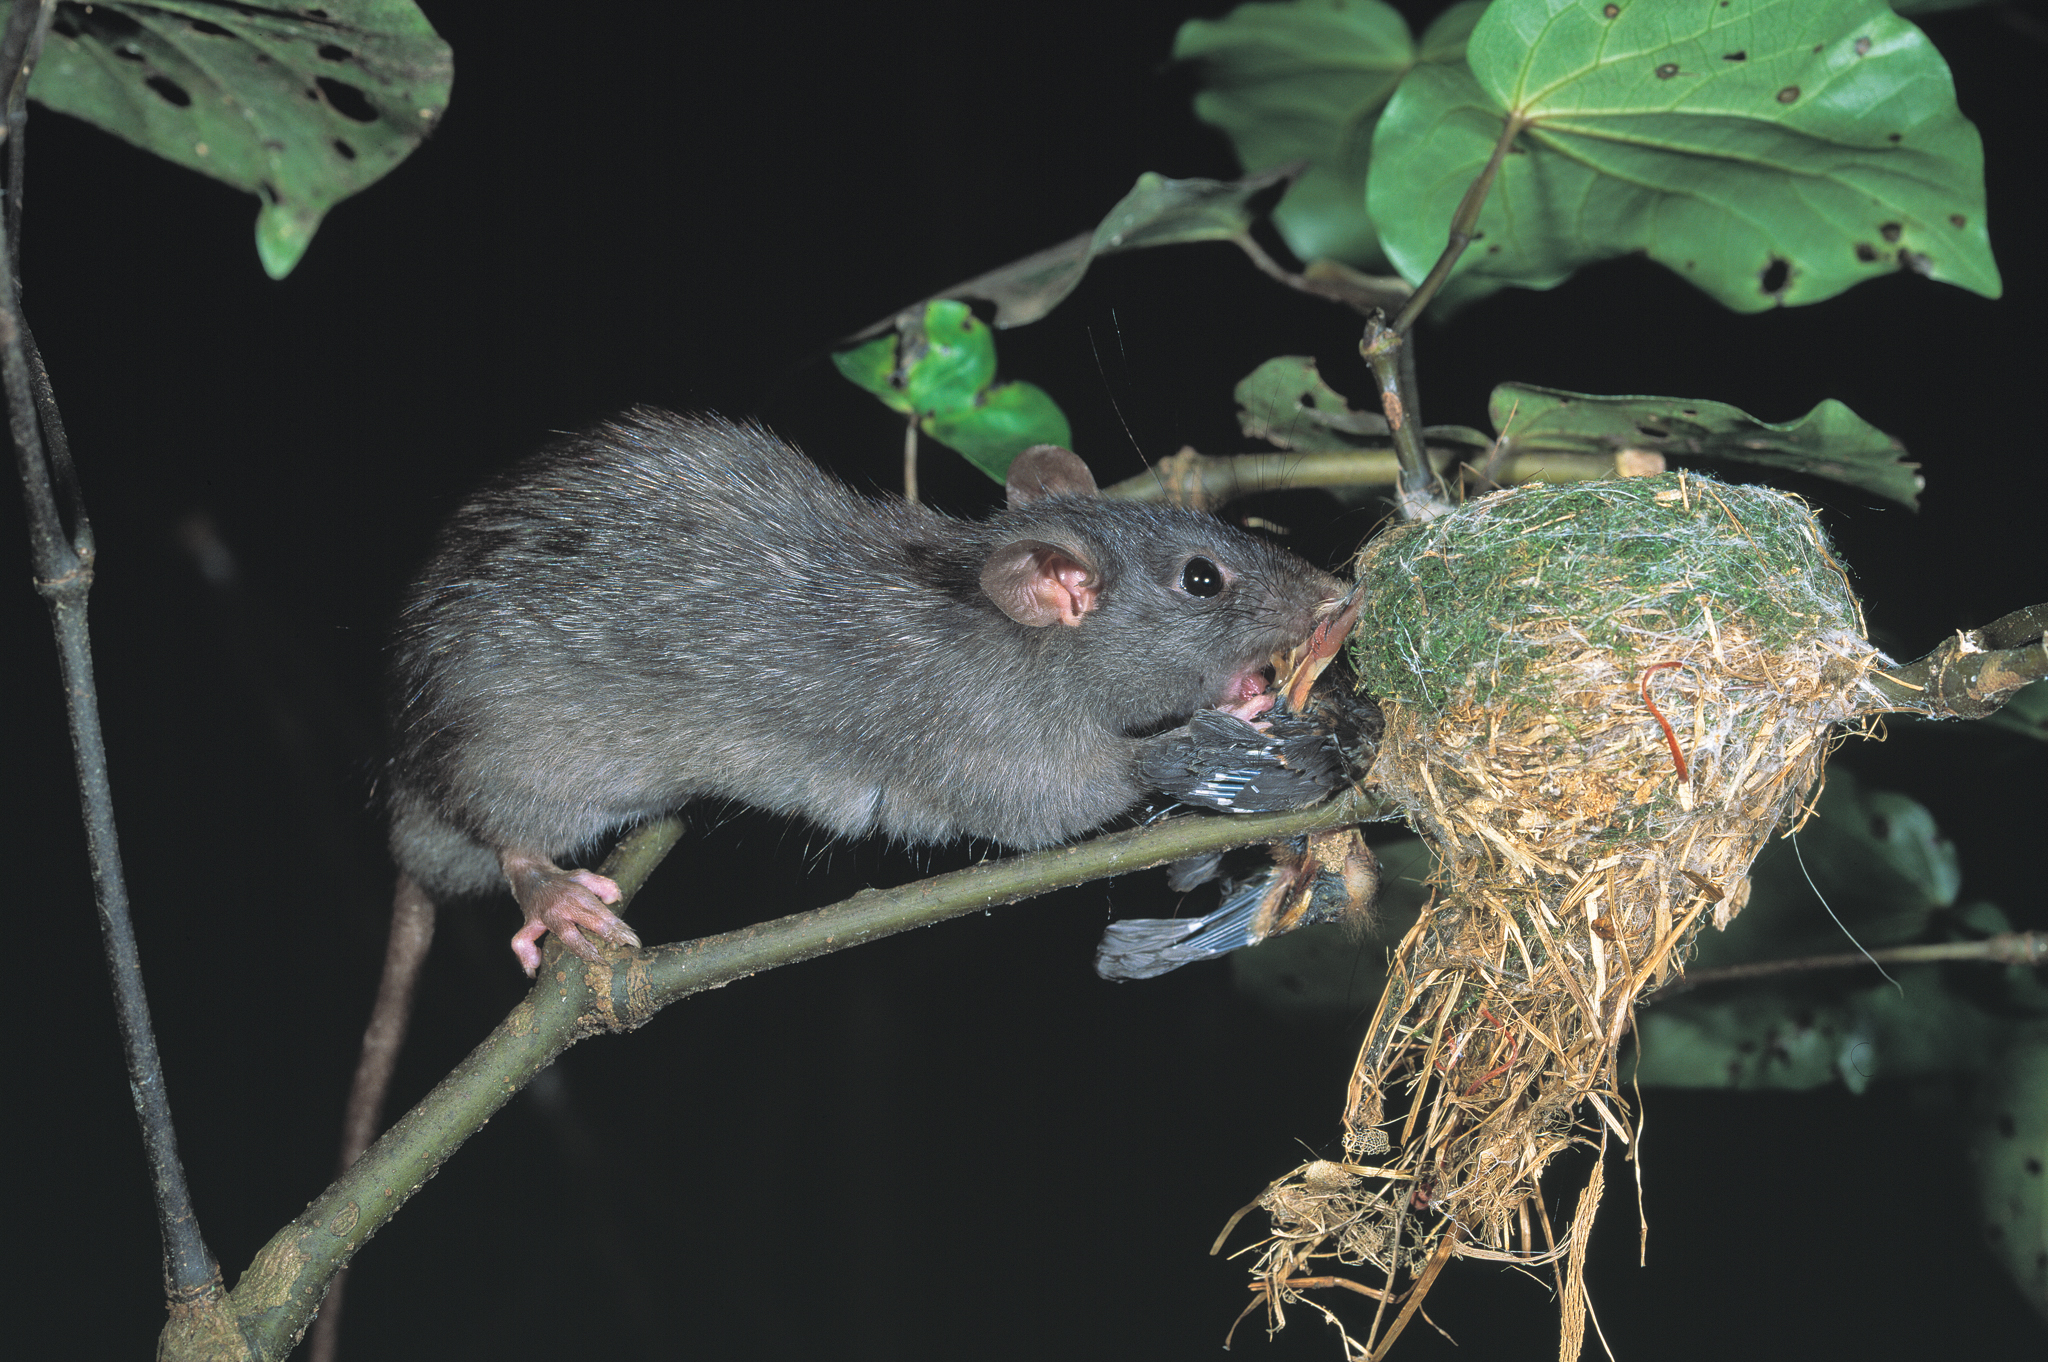 A ship rat (Rattus rattus) preys on a New Zealand fantail (Rhipidura fuliginosa). The birds, known locally as a Piwakawaka, use spider webs to hold together their cup-like nests. Photograph copyright Nga Manu